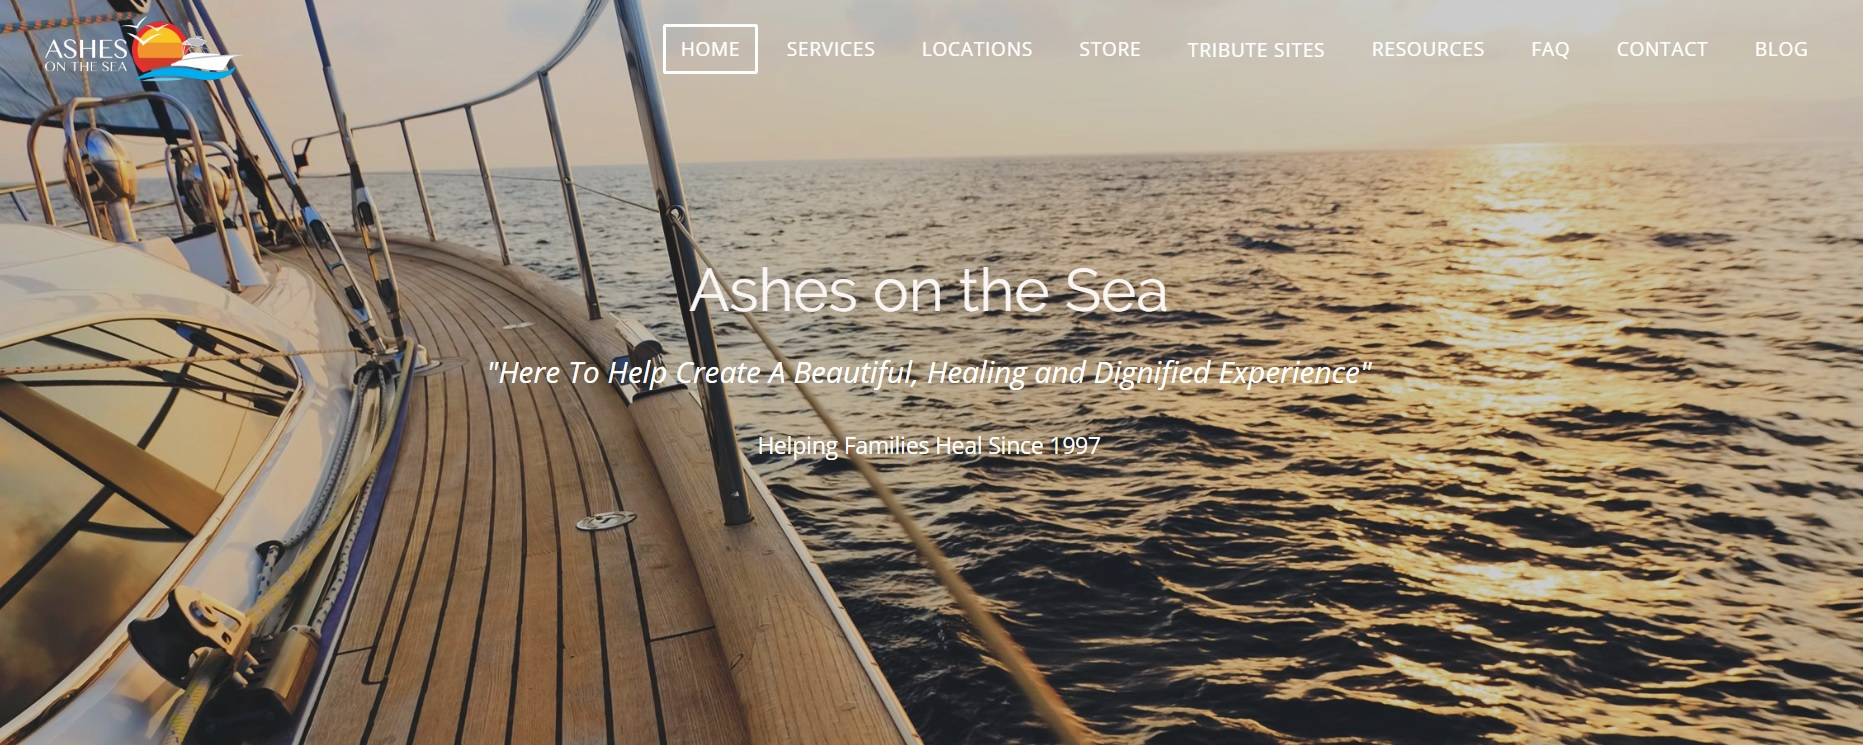 ashes on the sea.jpg